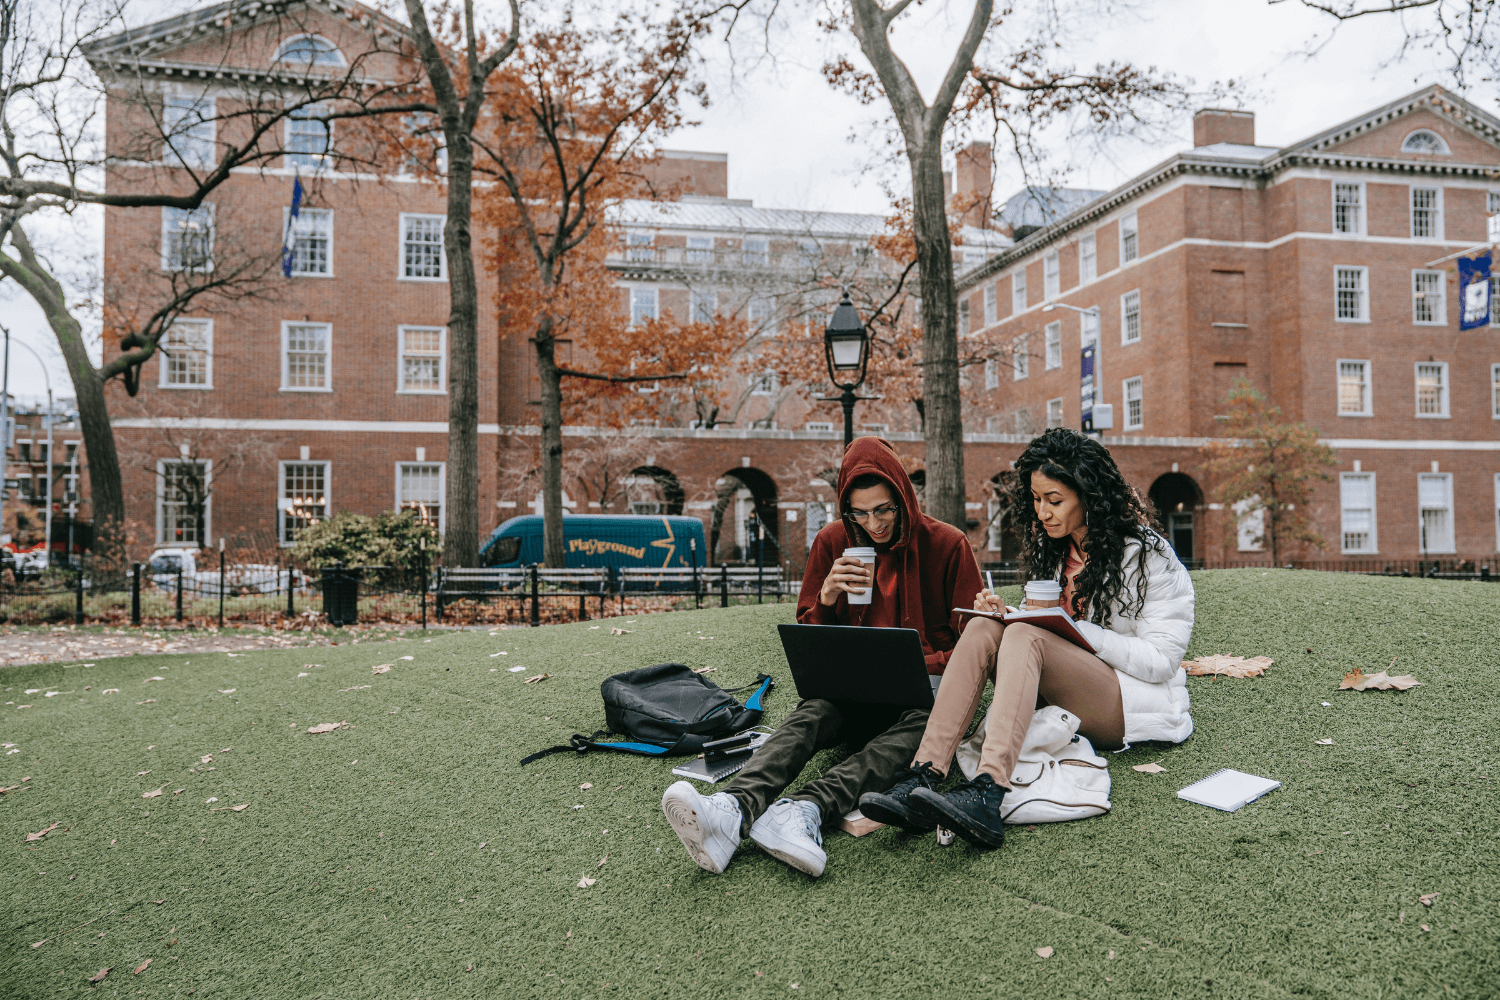 Two students sitting on a lawn comparing notes